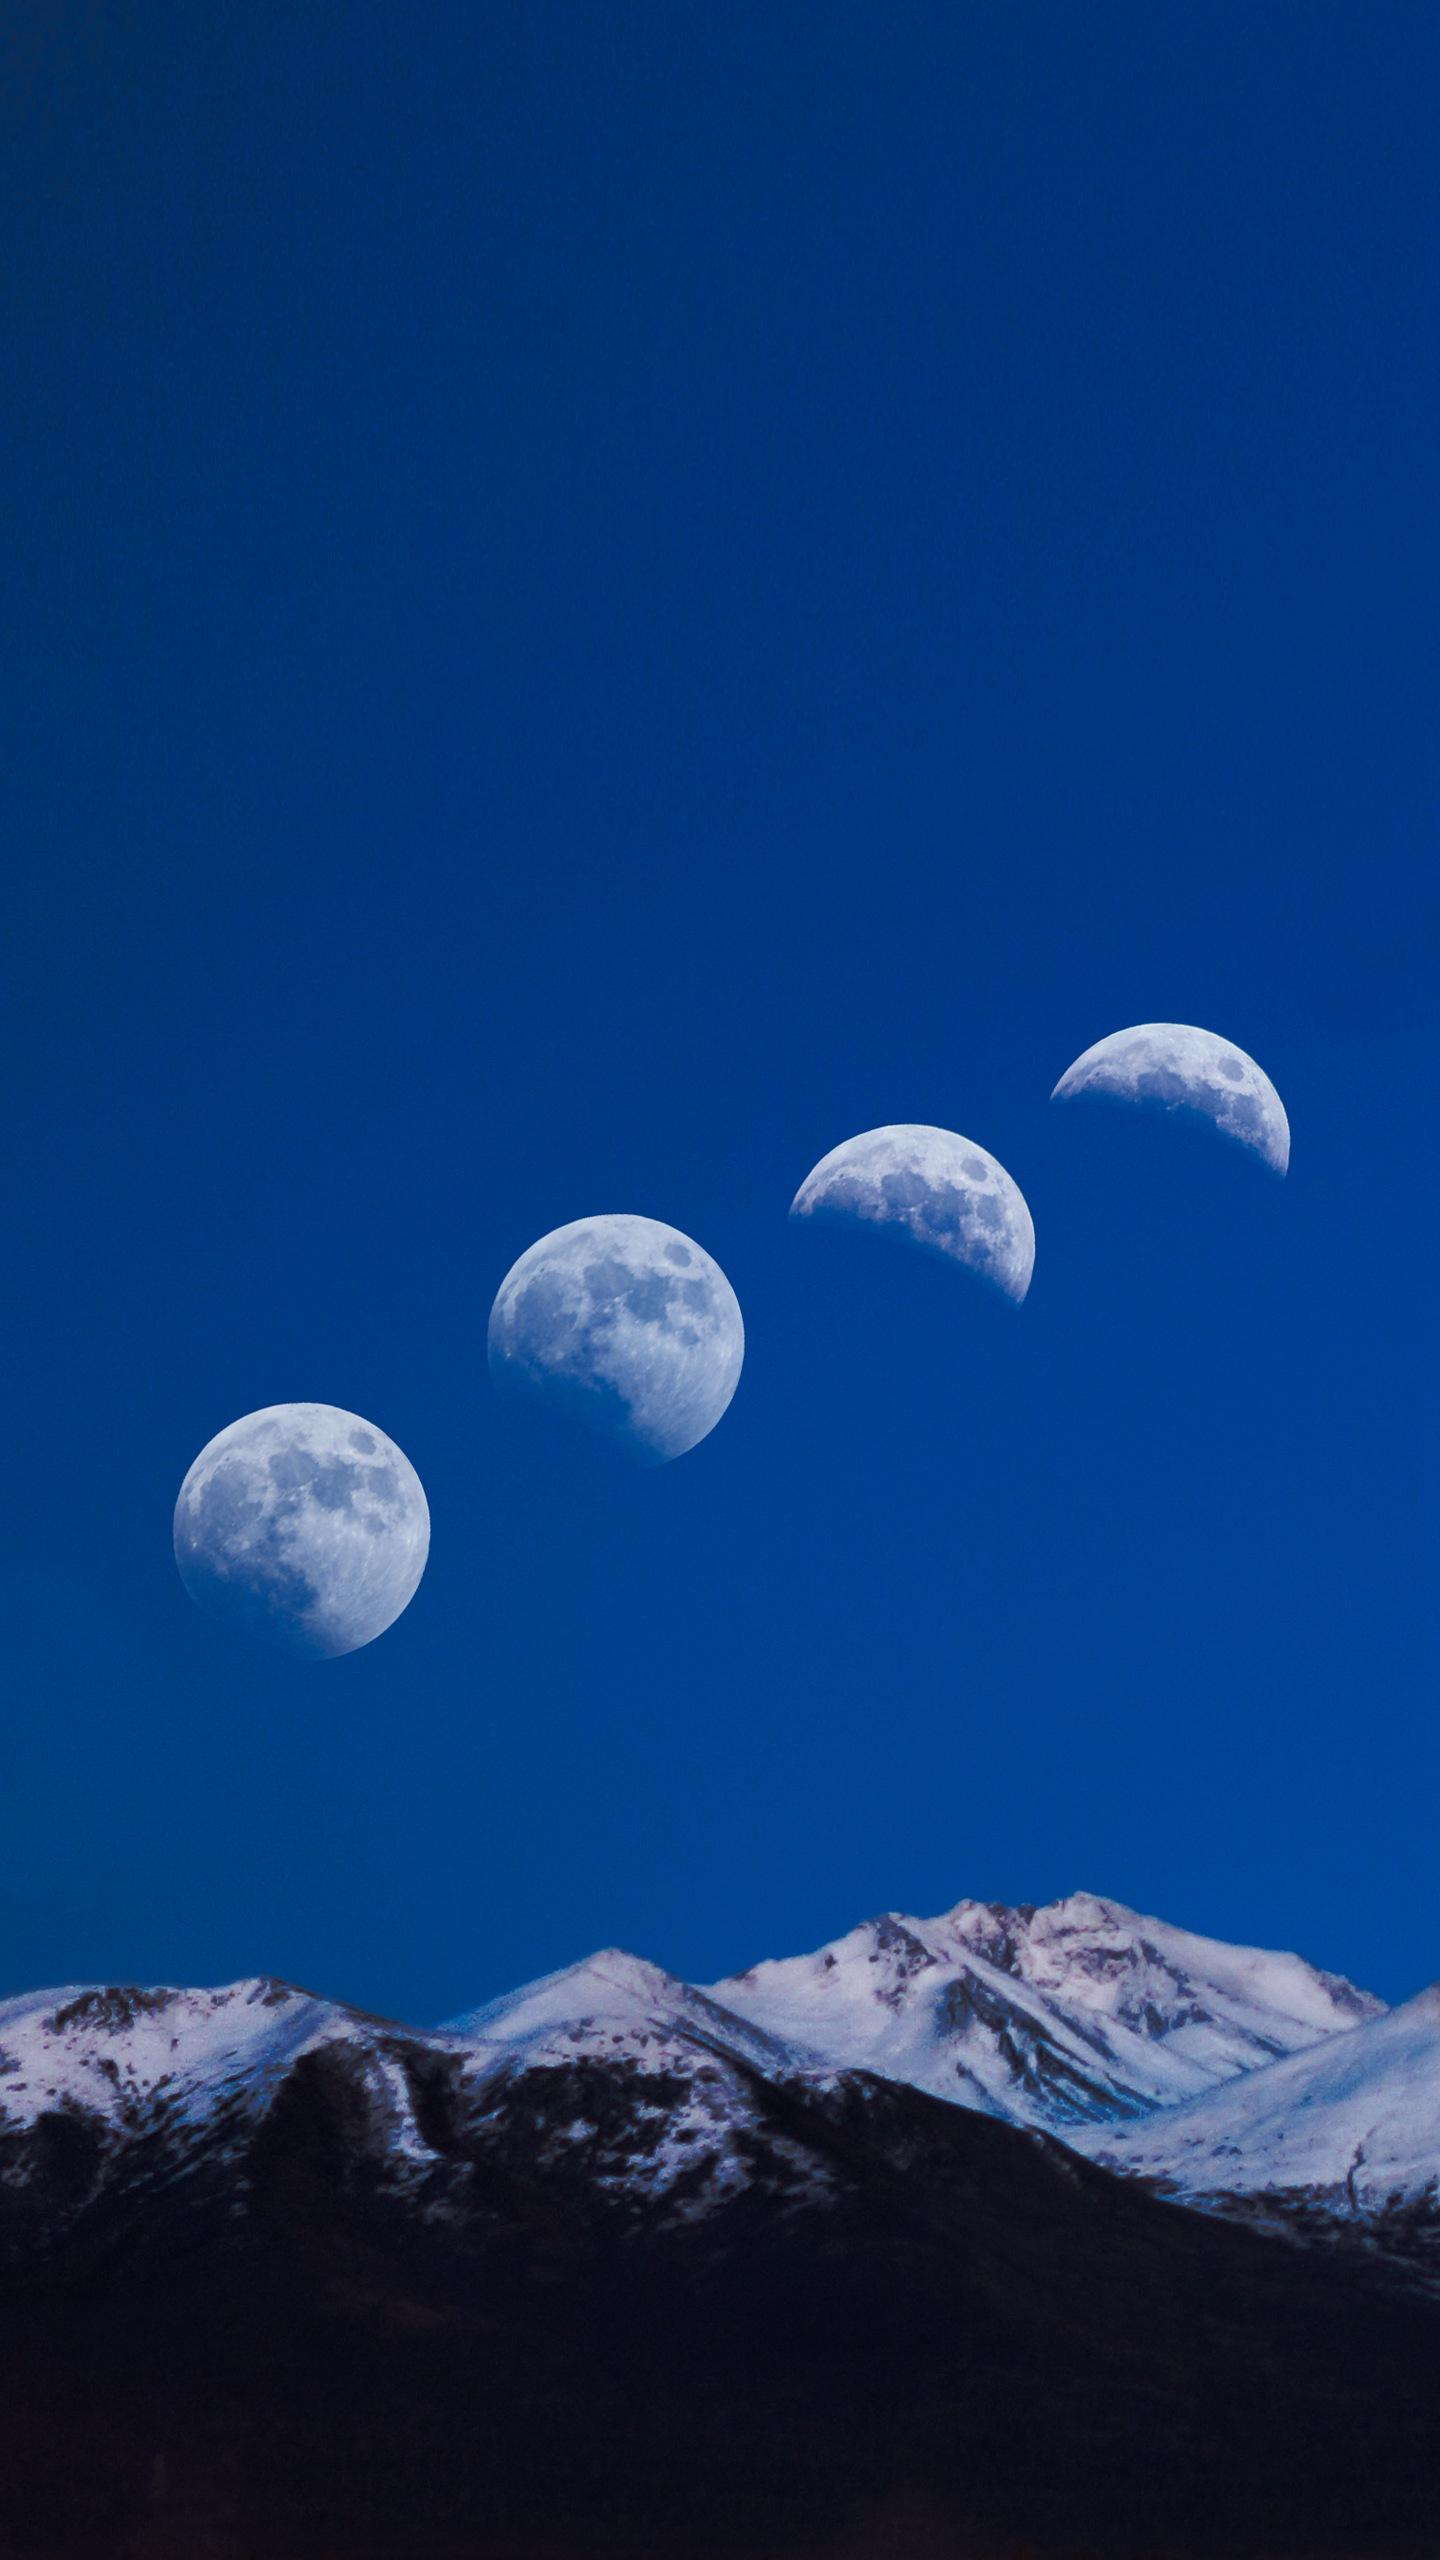 A day on the moon. The earth rotates for 24 hours. How long does it take for the moon to spin?